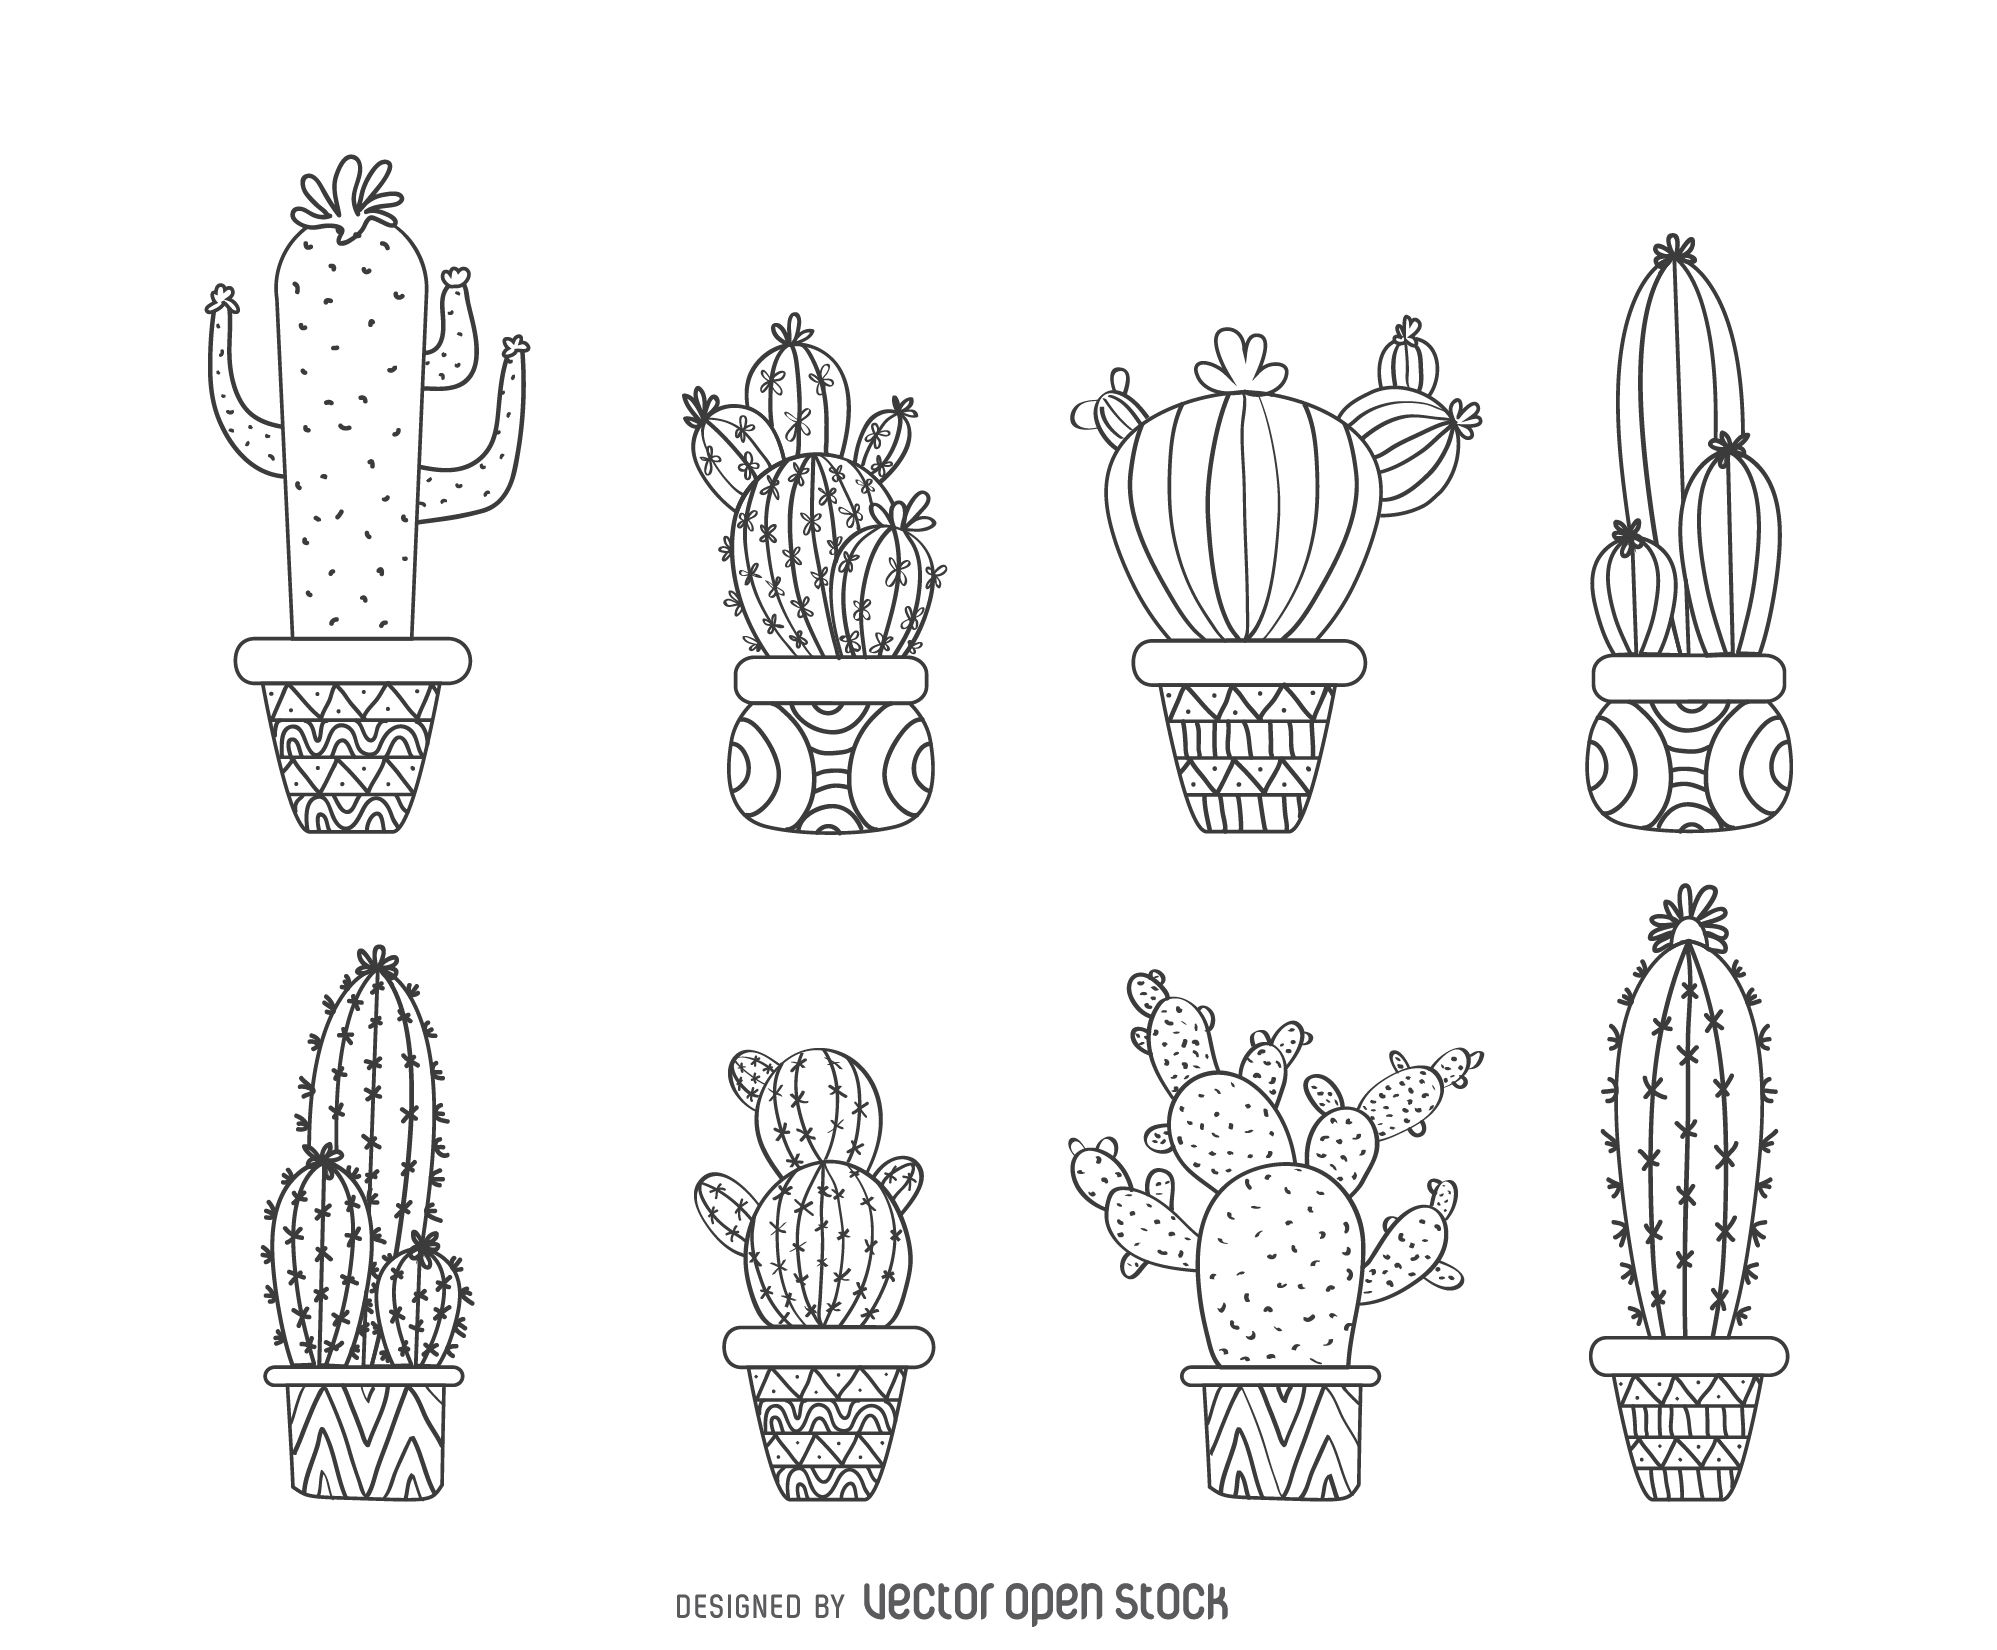 Set Of Illustrated Cactus Outlines Featuring Multiple